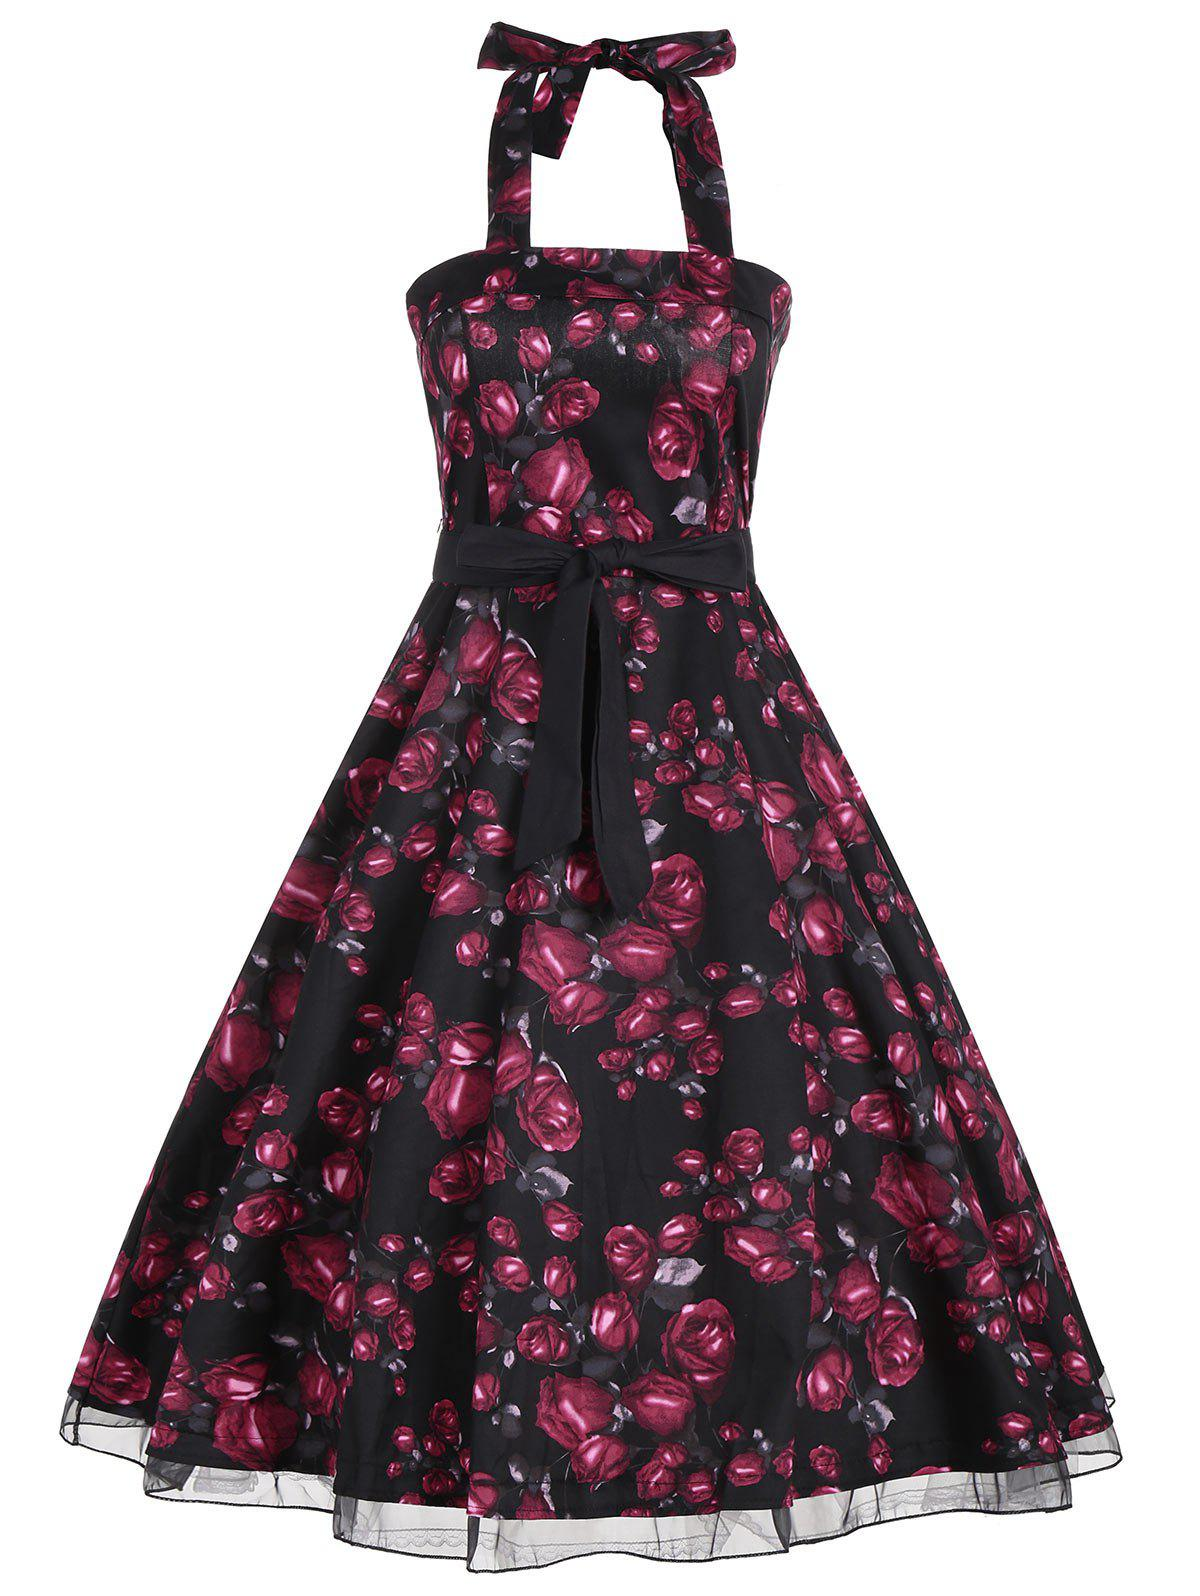 Retro Style Halter Floral Print Belted Dress цена 2017